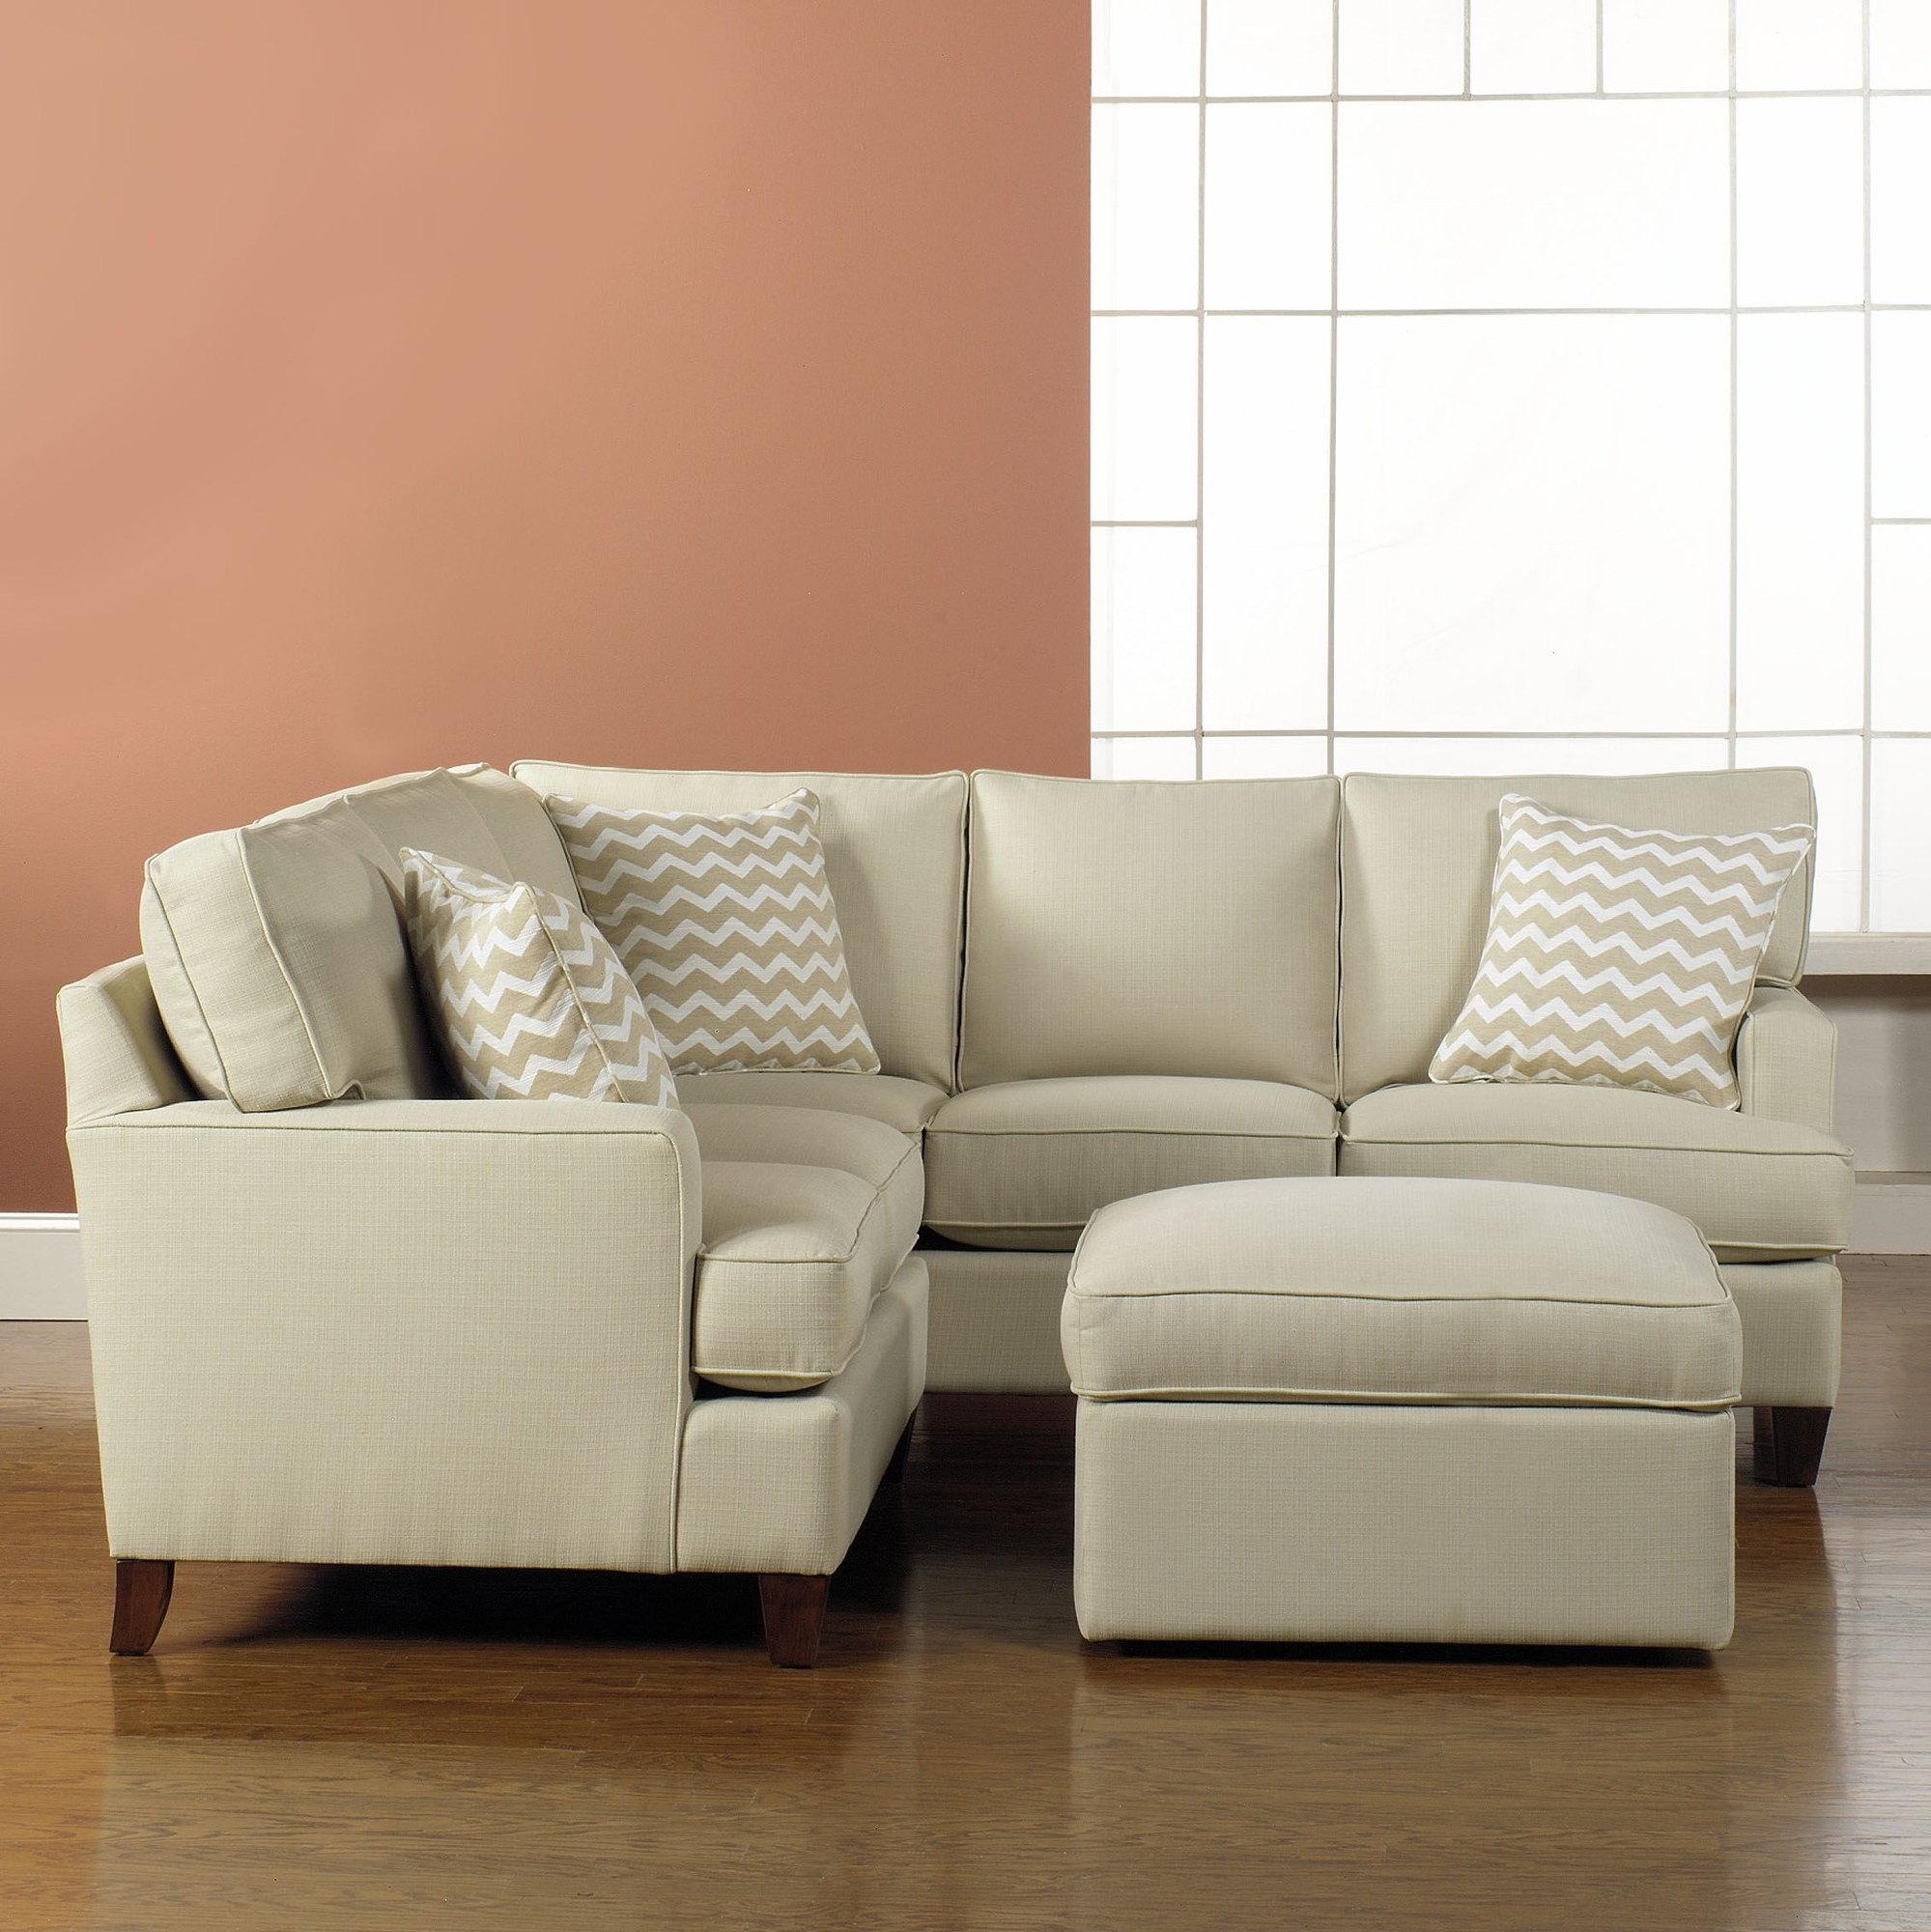 Most Recently Released Sectional Sofas For Small Rooms In Awesome Small Sectional Sofa For Small Spaces – Buildsimplehome (View 5 of 20)